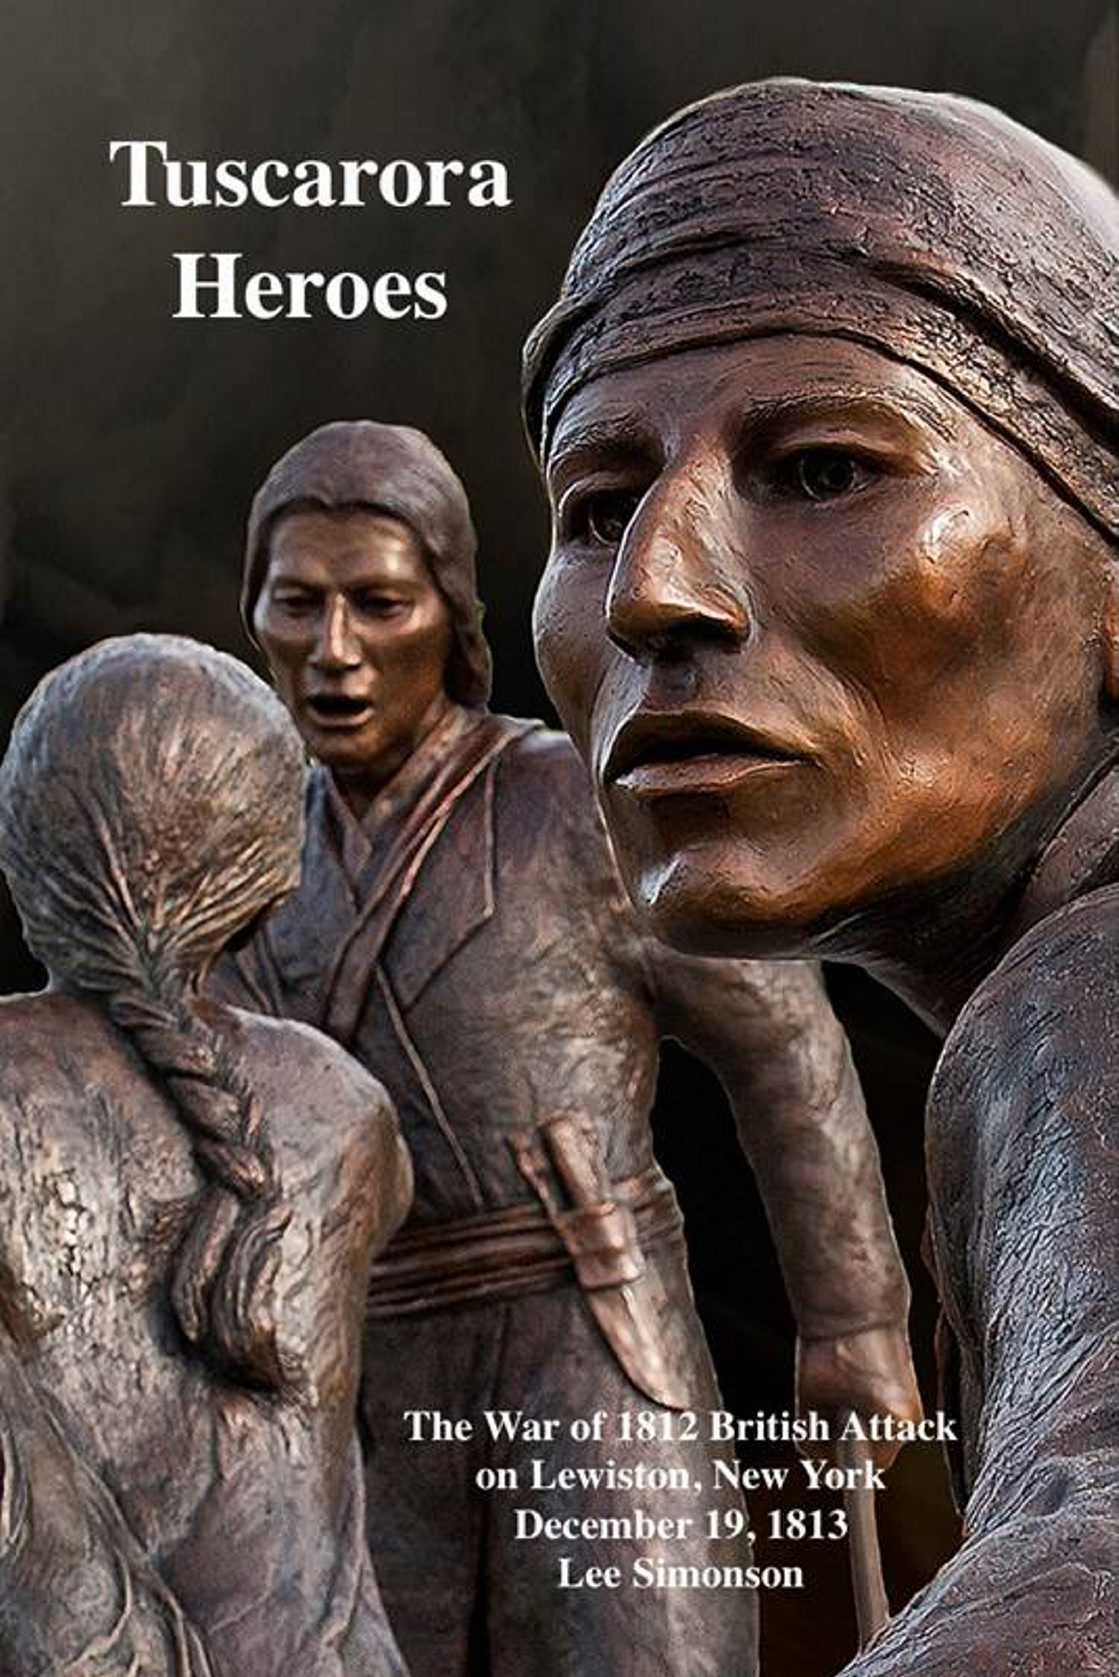 """The new cover art of """"Tuscarora Heroes"""" by photographer Bill Carpenter spotlights the Tuscarora Heroes Monument."""